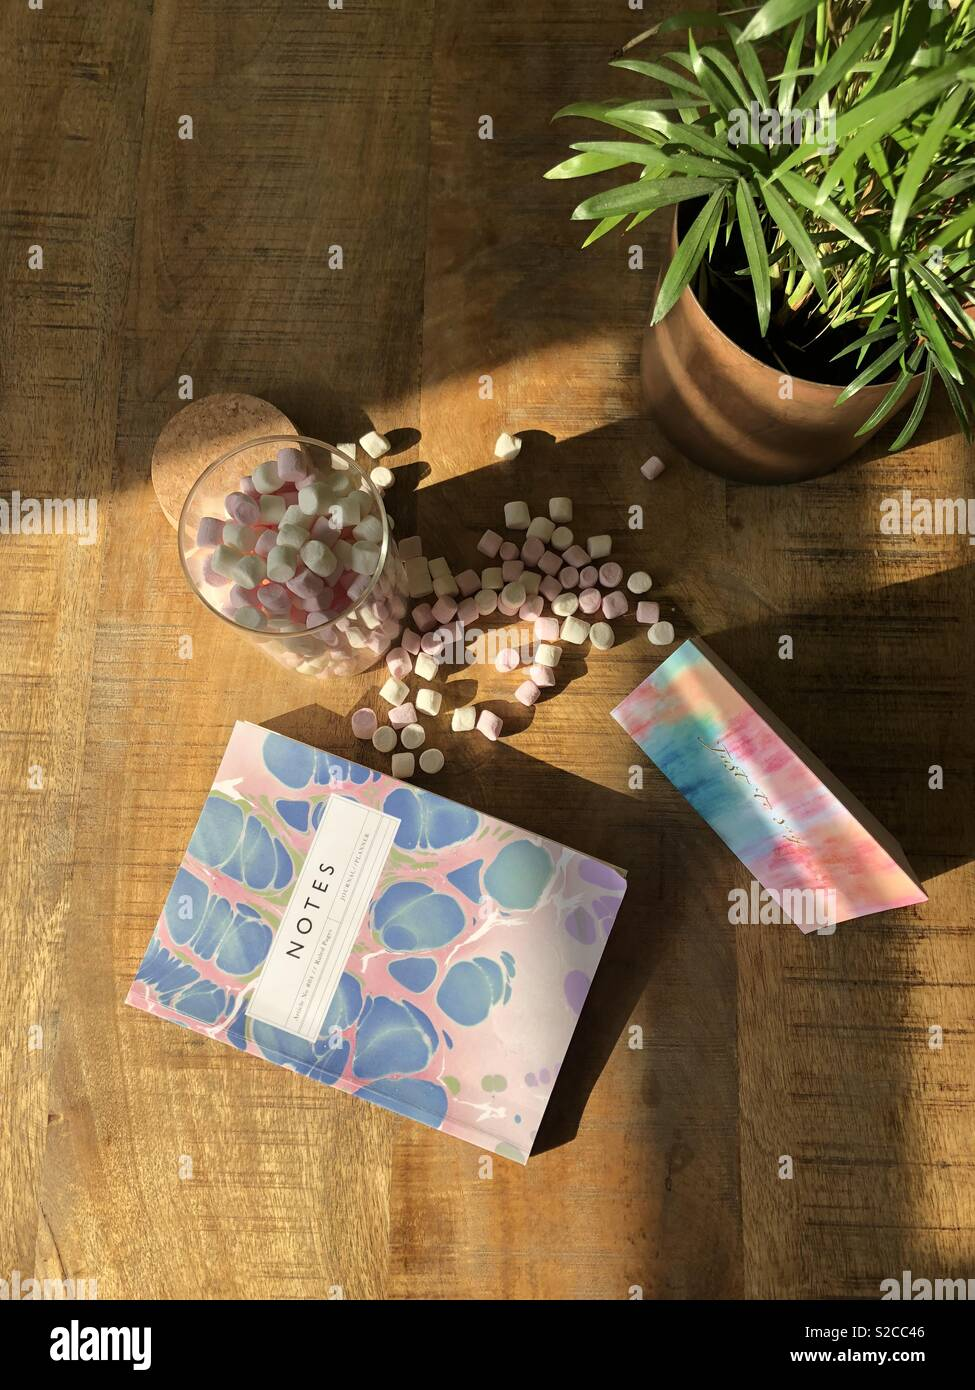 Desk flat lay with mini marshmallow sweet treats, marble patterned notebook and greeting card. Pot plant in corner - Stock Image